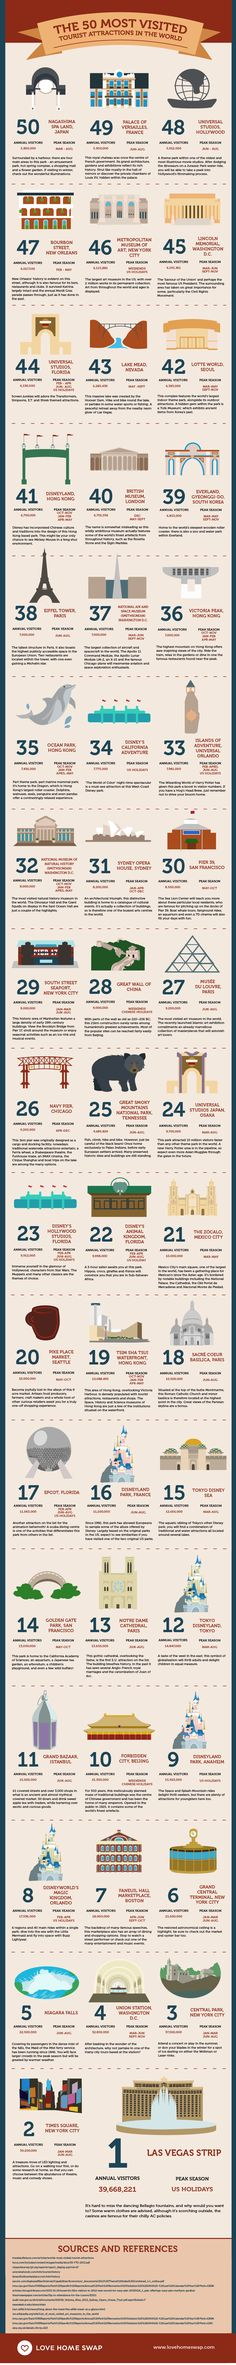 The World's 50 Most Visited Tourist Attractions in the World. I've been lucky enough to have been to 20 of these places (Disney is on here a lot...)!